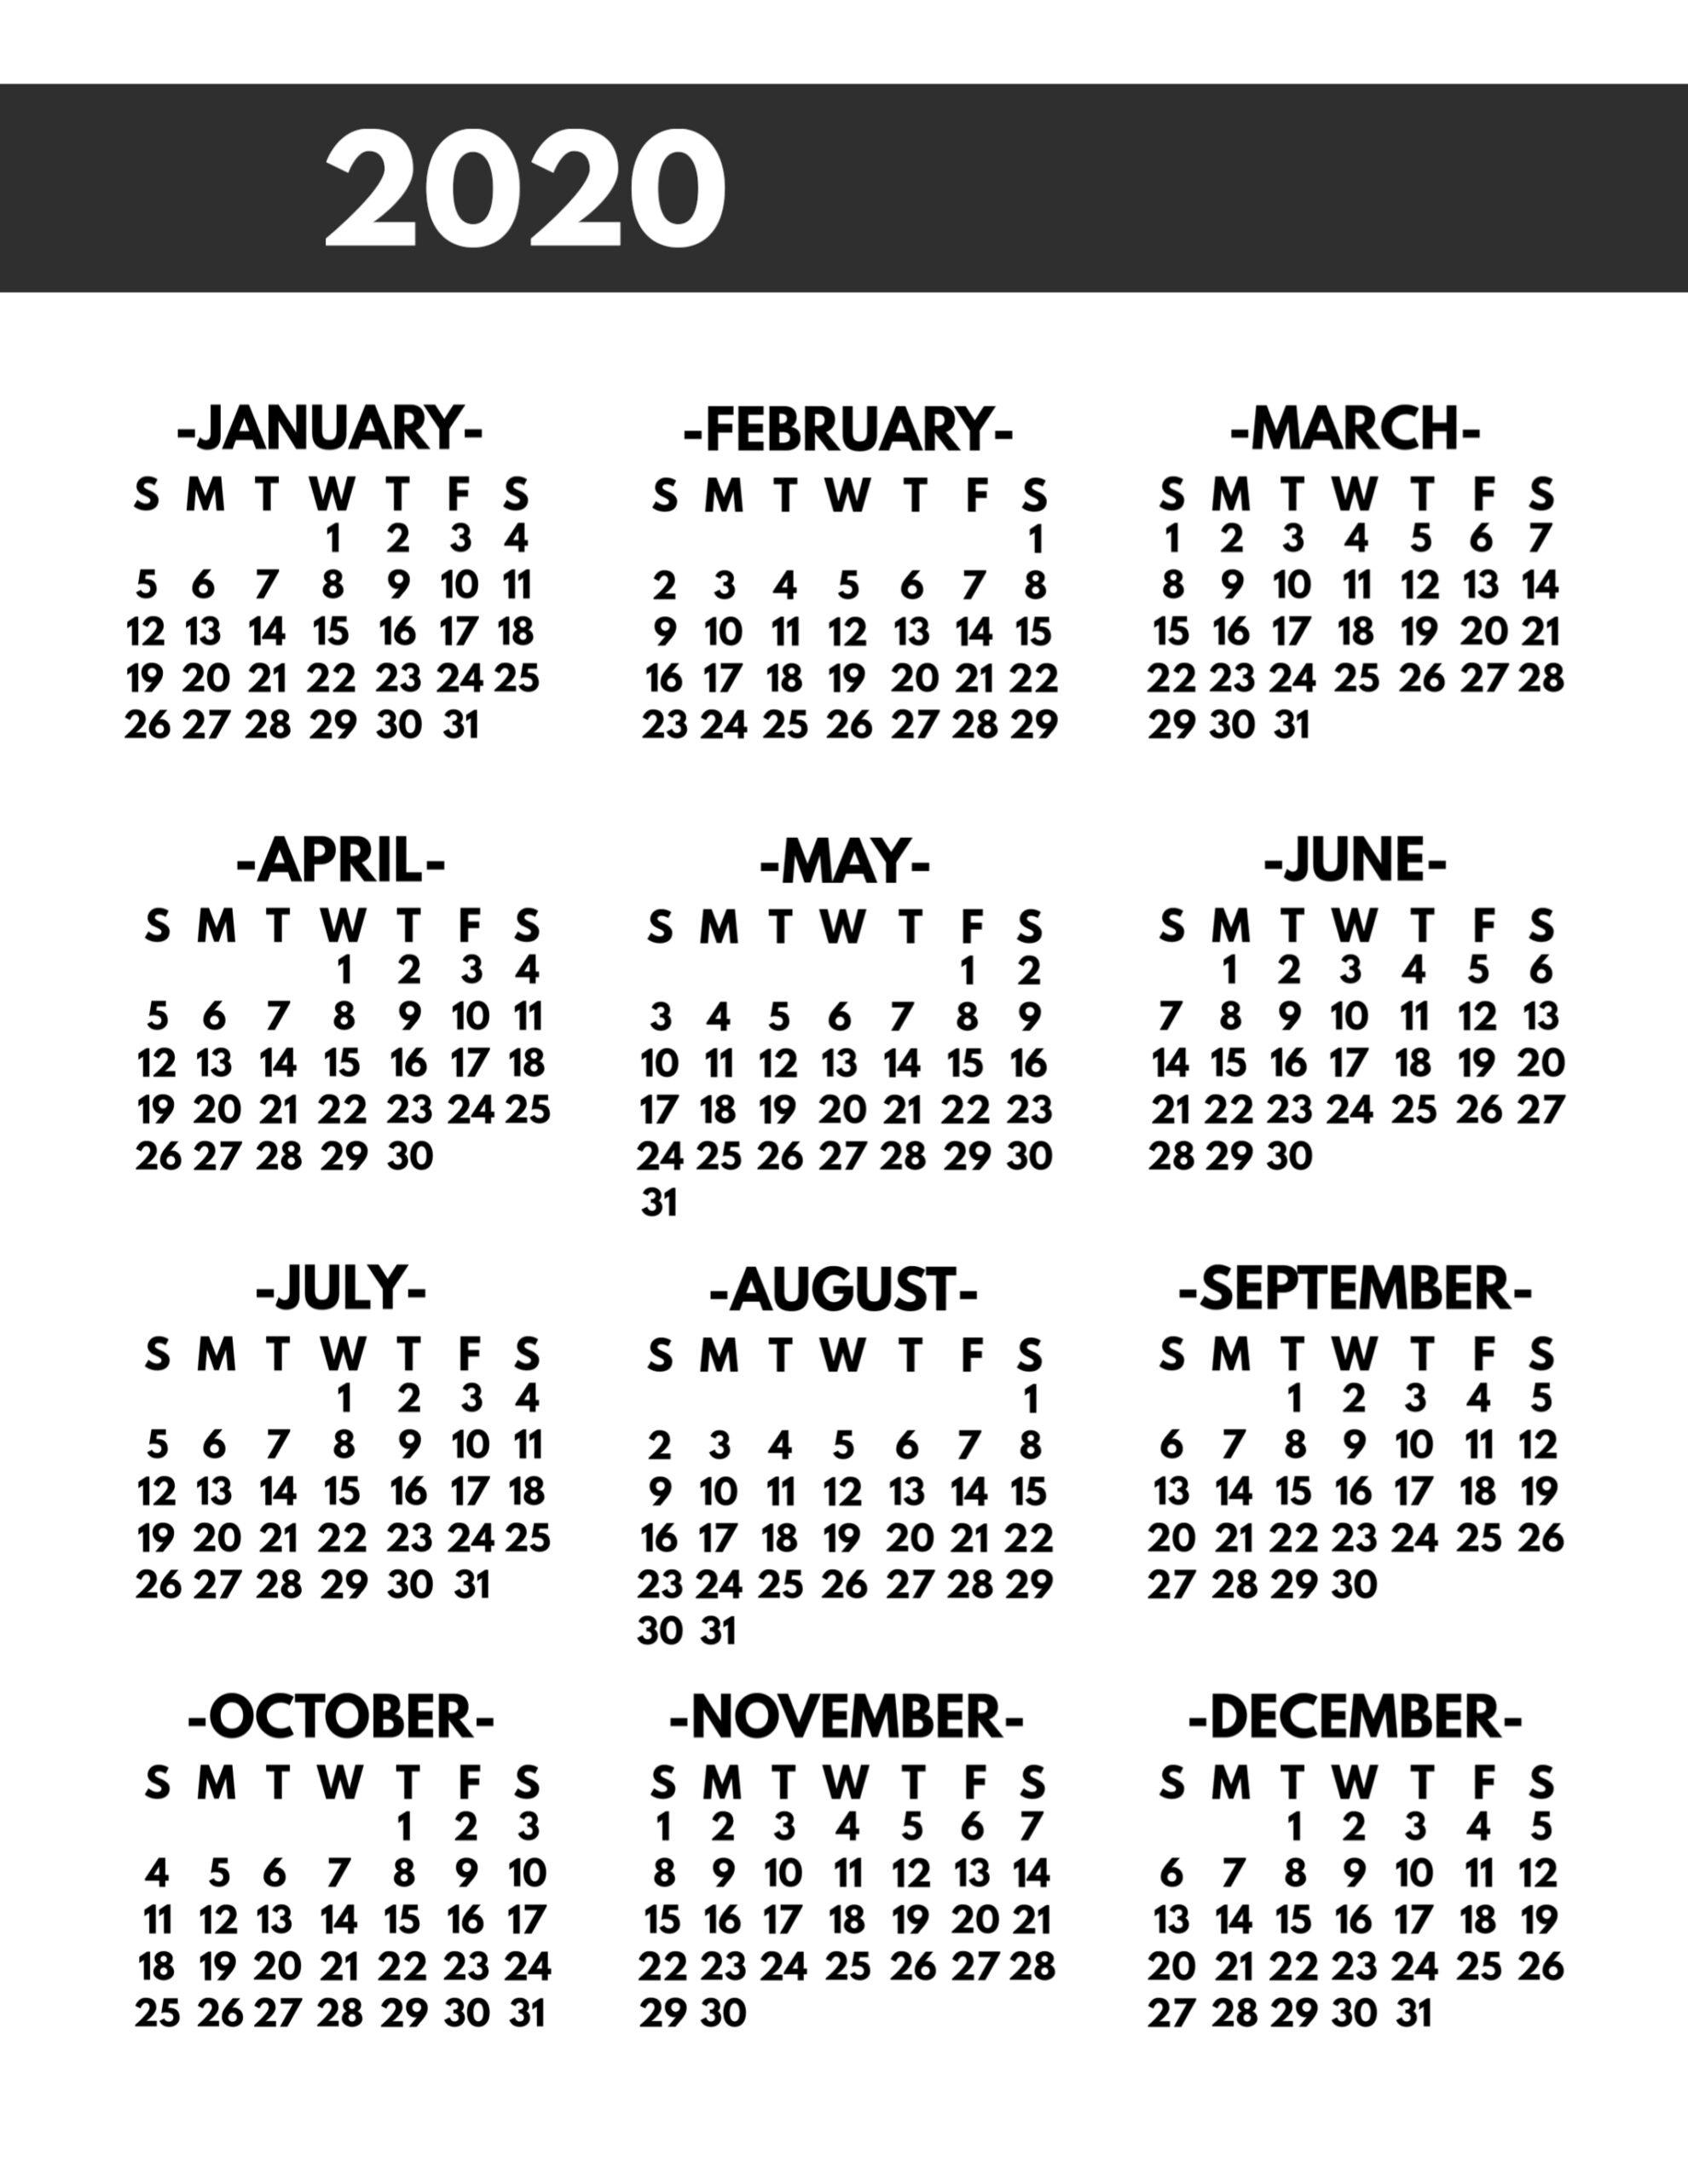 2020 Printable One Page Year At A Glance Calendar - Paper pertaining to Calendar At A Glance 2020